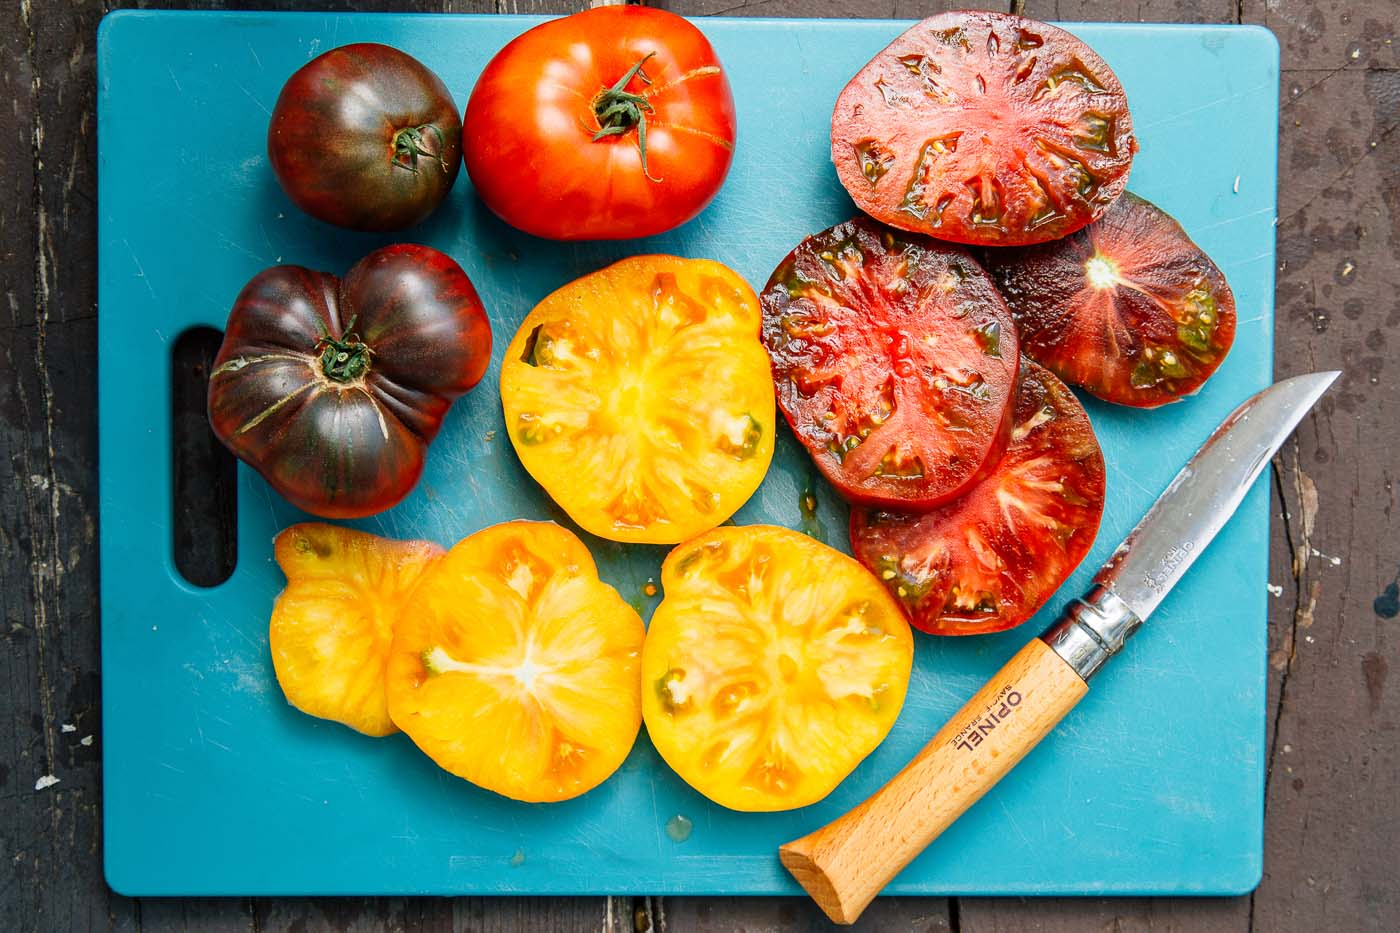 Red and yellow heirloom tomato slices on a blue cutting board